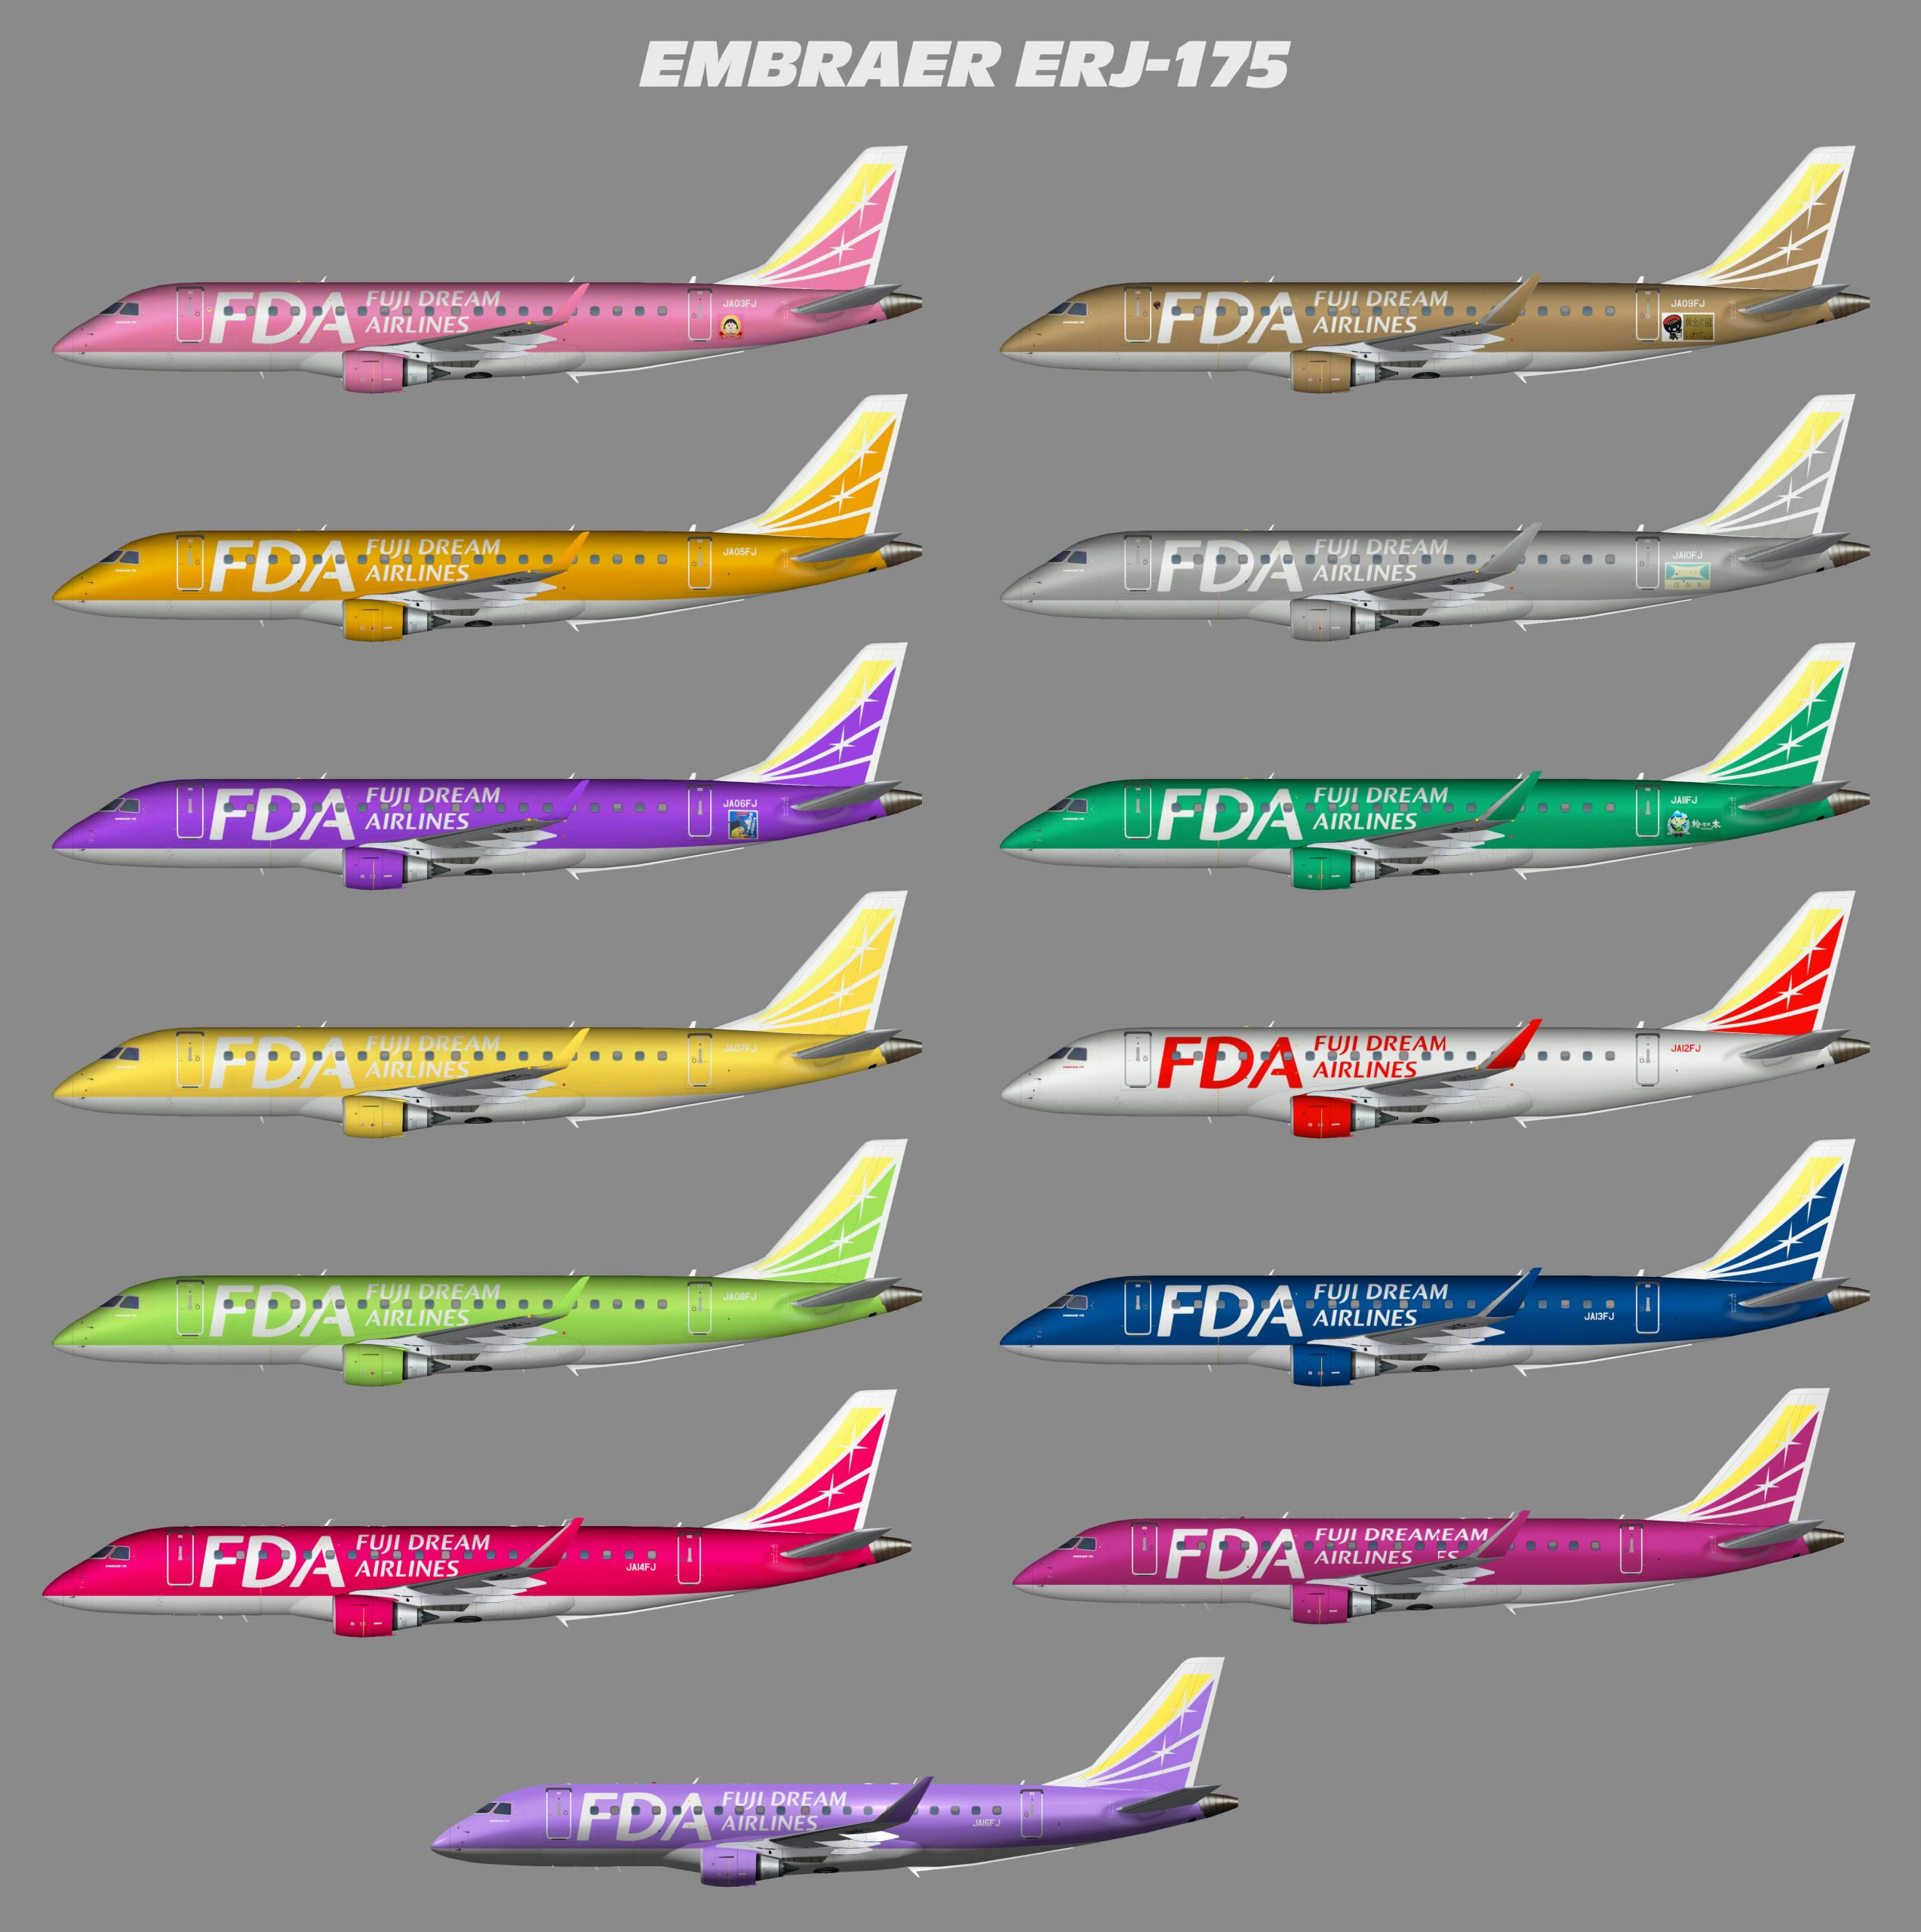 Embraer  ERJ-175 Fuji Dream Airlines